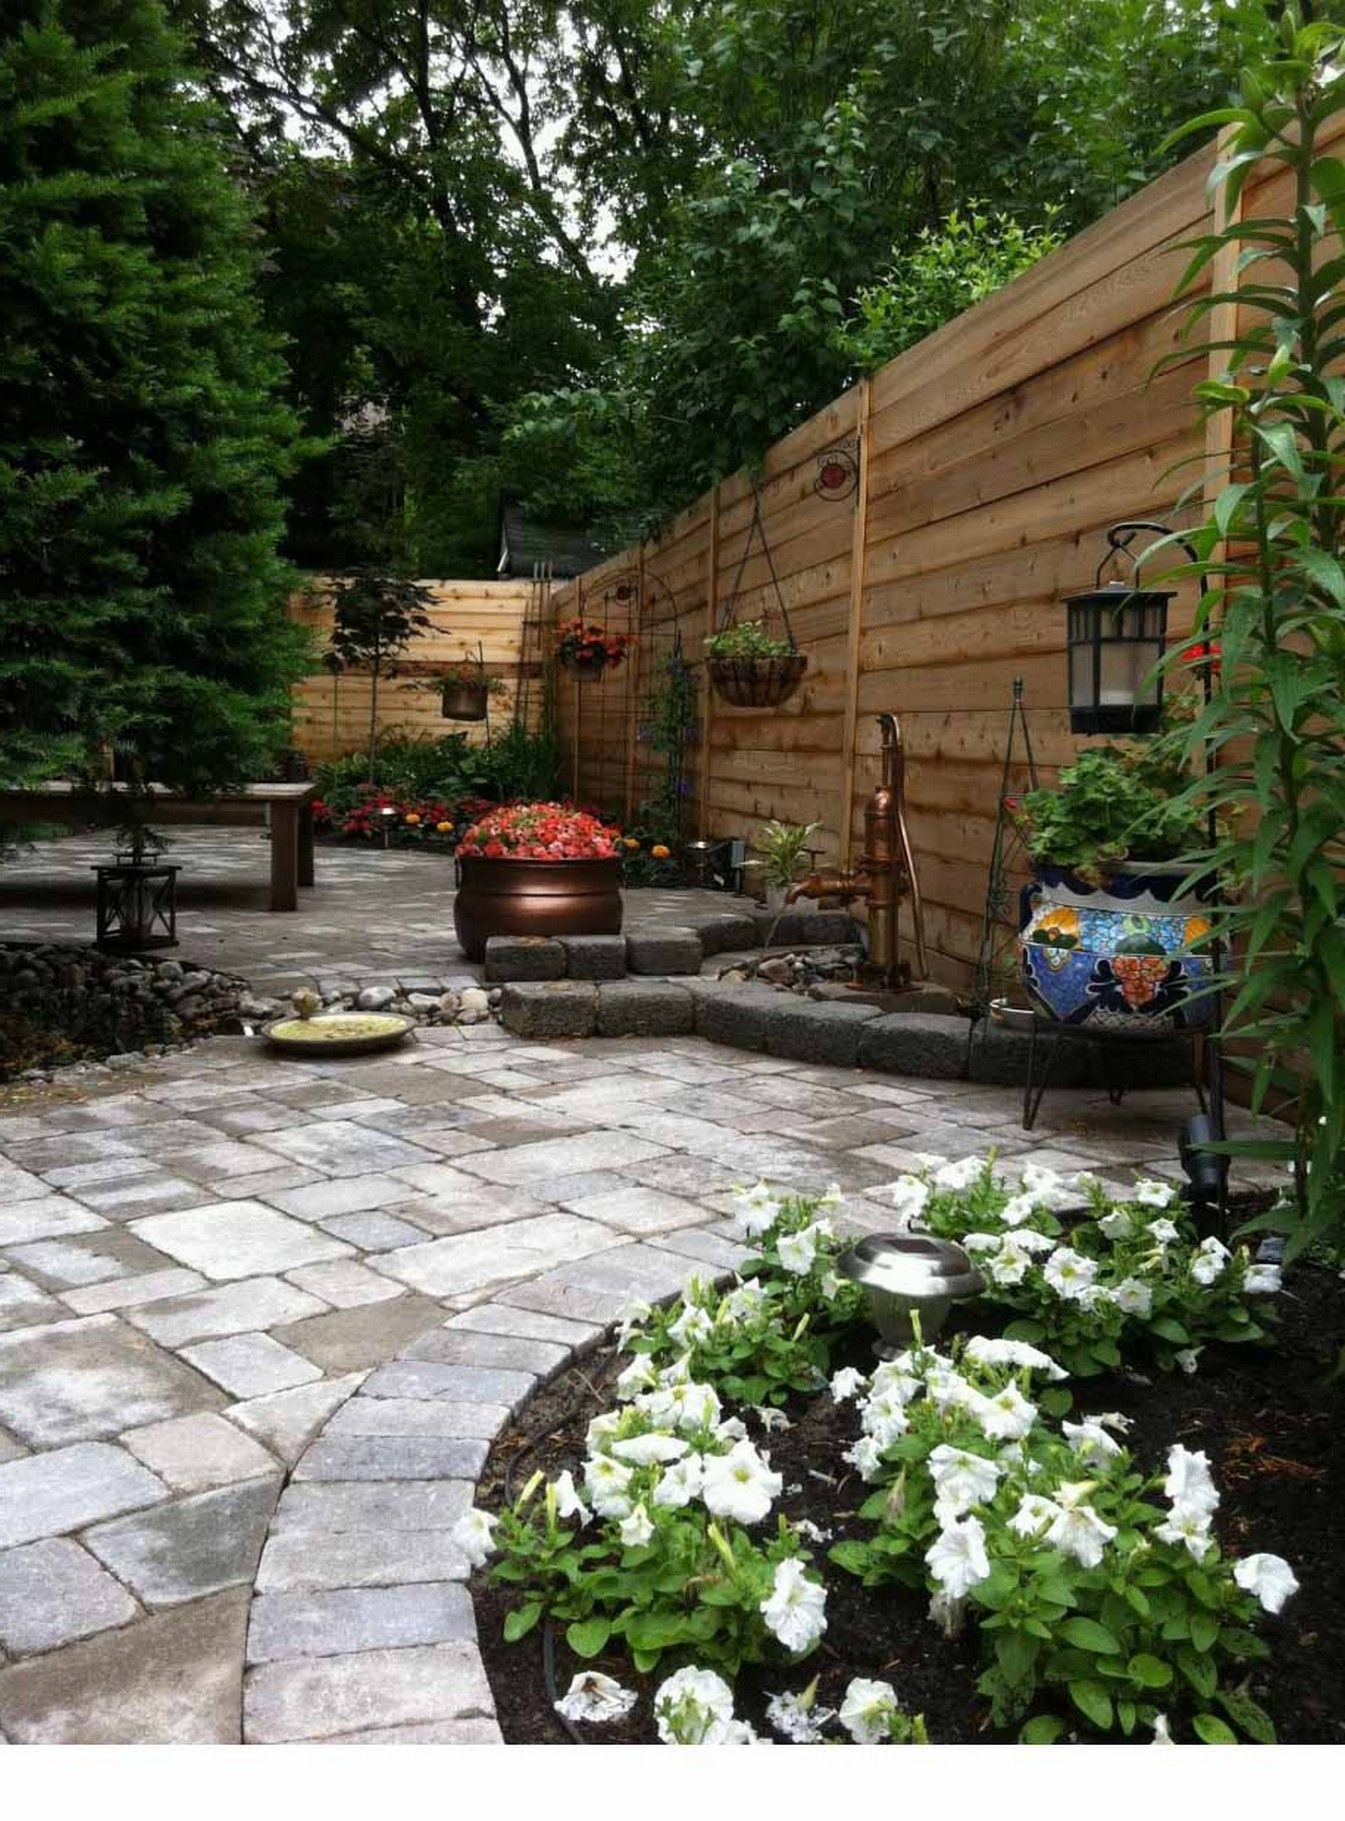 10 landscaping ideas to turn your yard into paradise on inspiring trends front yard landscaping ideas minimal budget id=79069